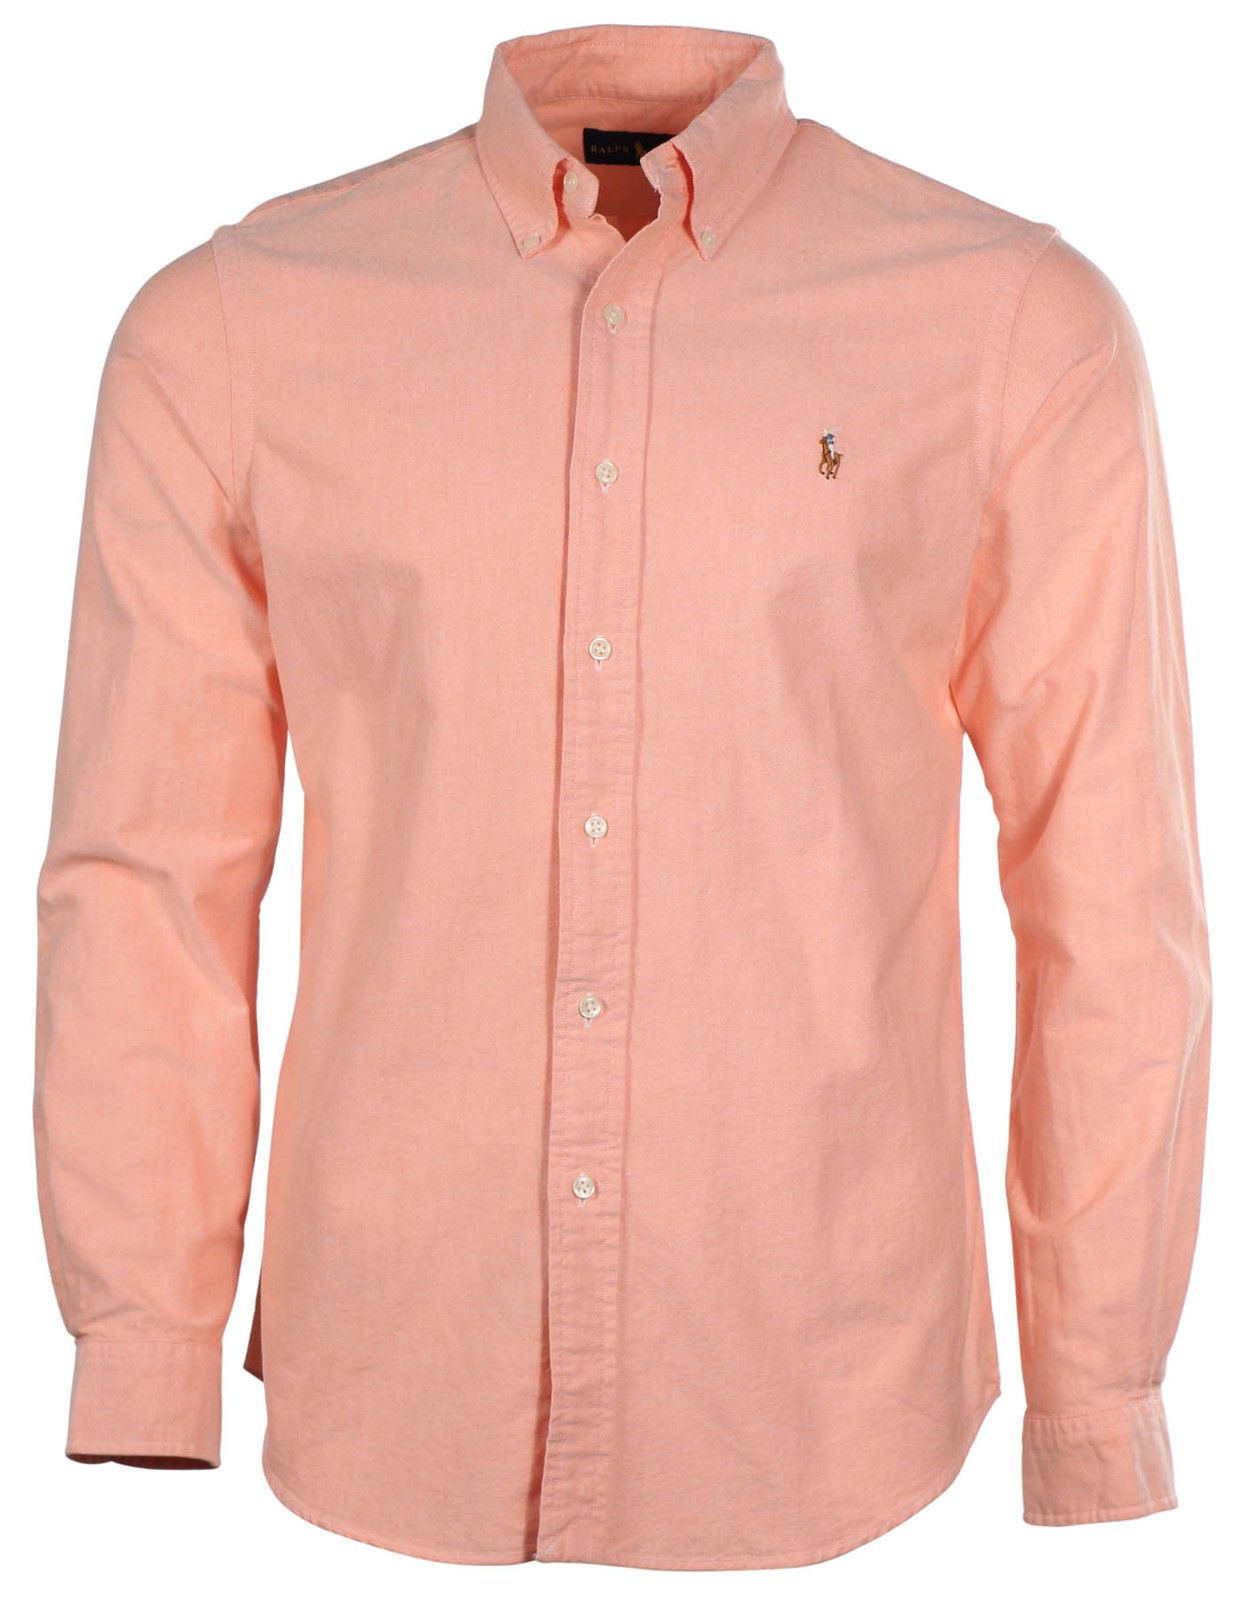 Polo Ralph Lauren Men\u0027s Long Sleeve Oxford Button Down Shirt Basketball |  eBay